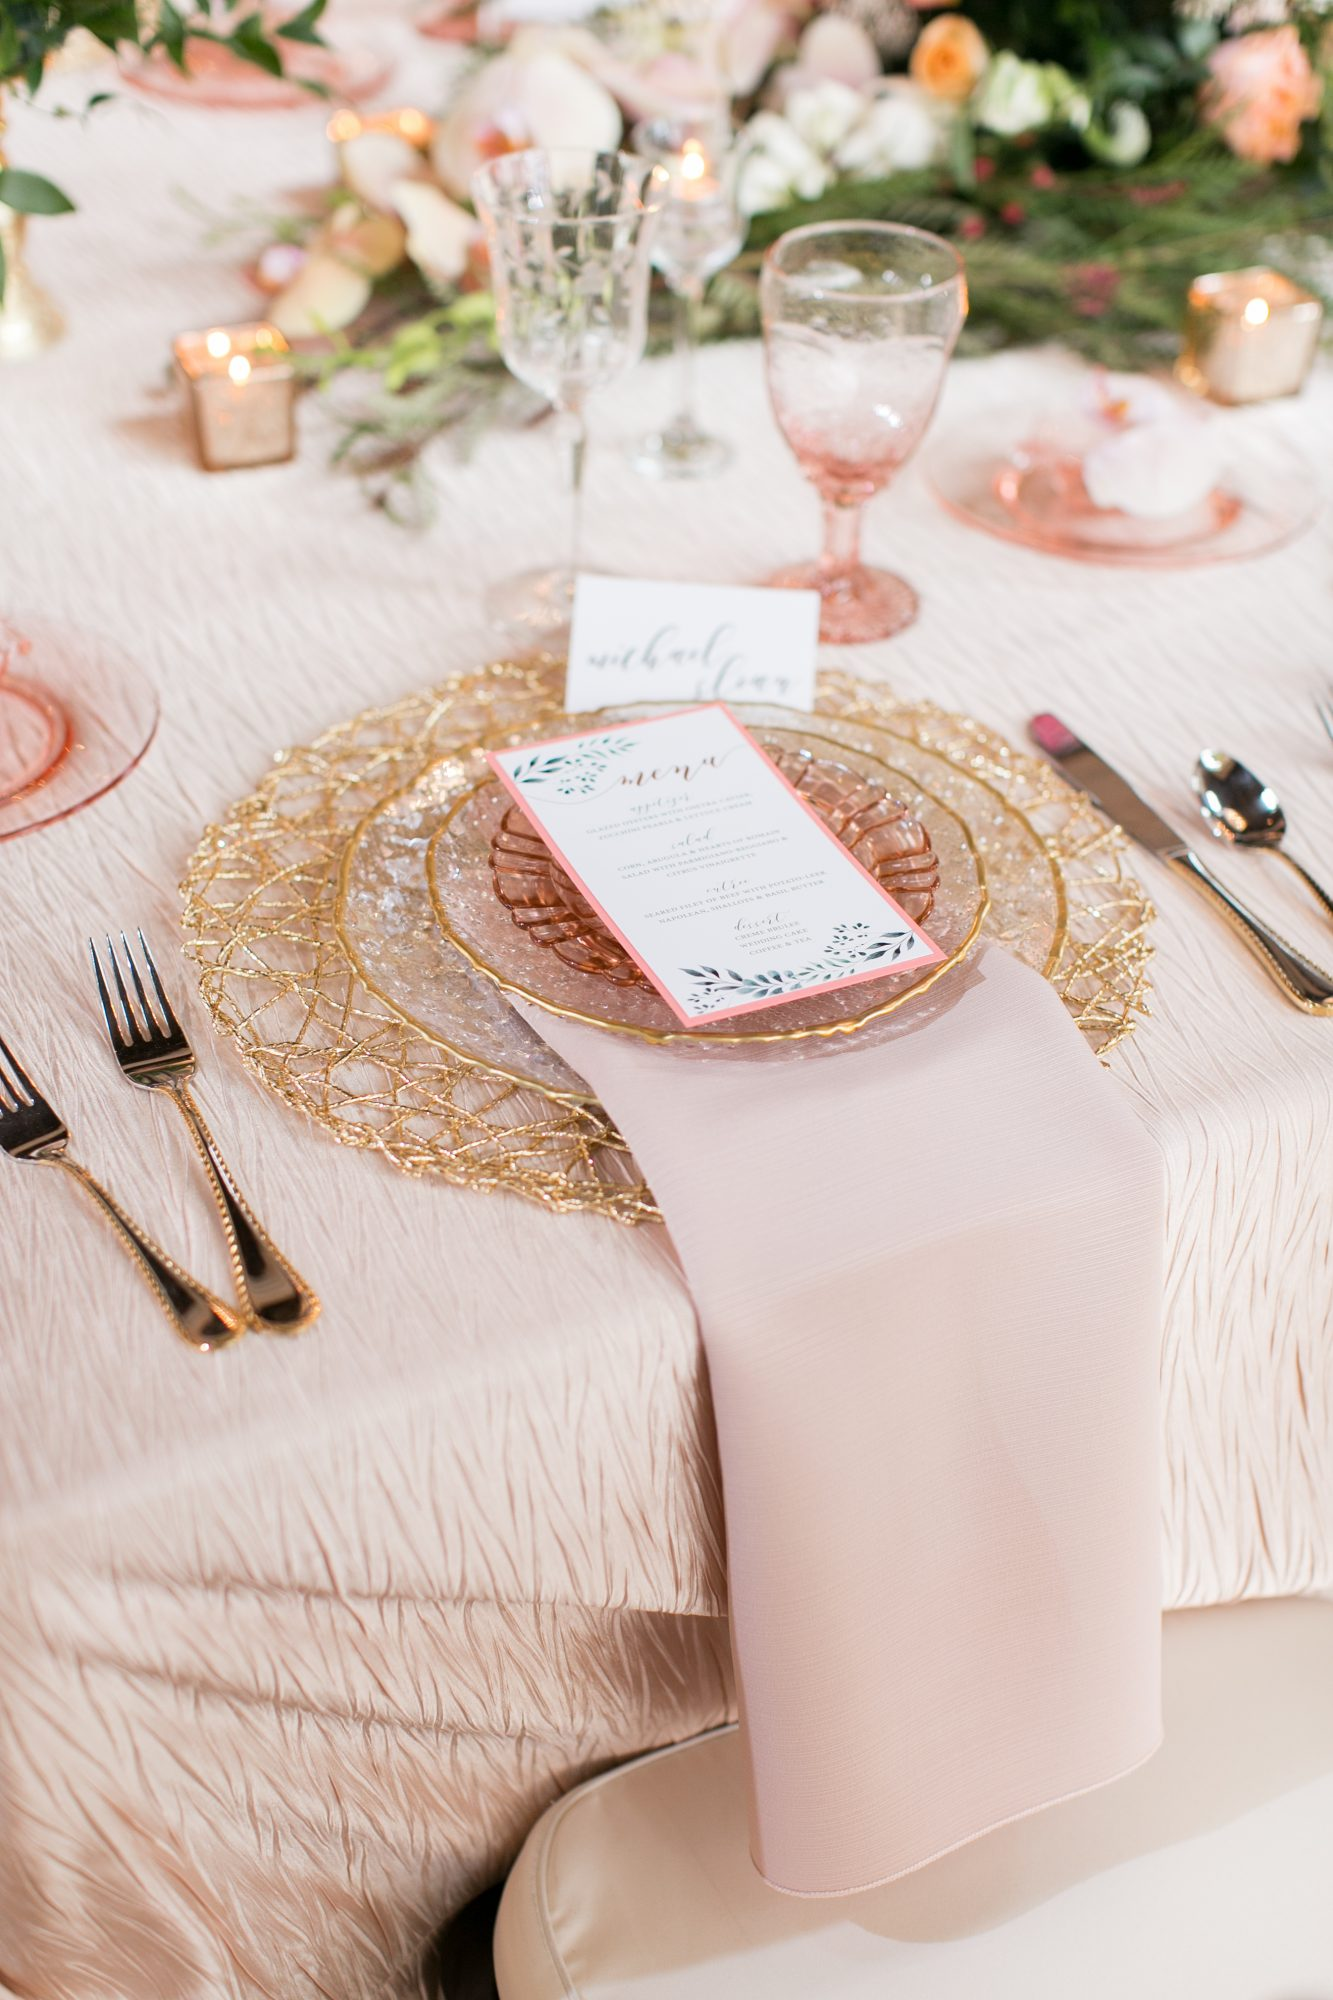 Waterford Wednesday: Perfecting Your Place Settings